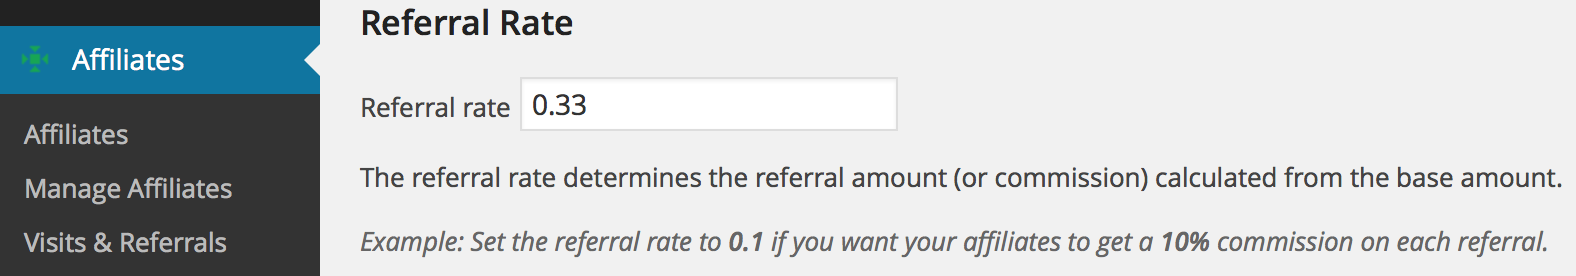 referral rate